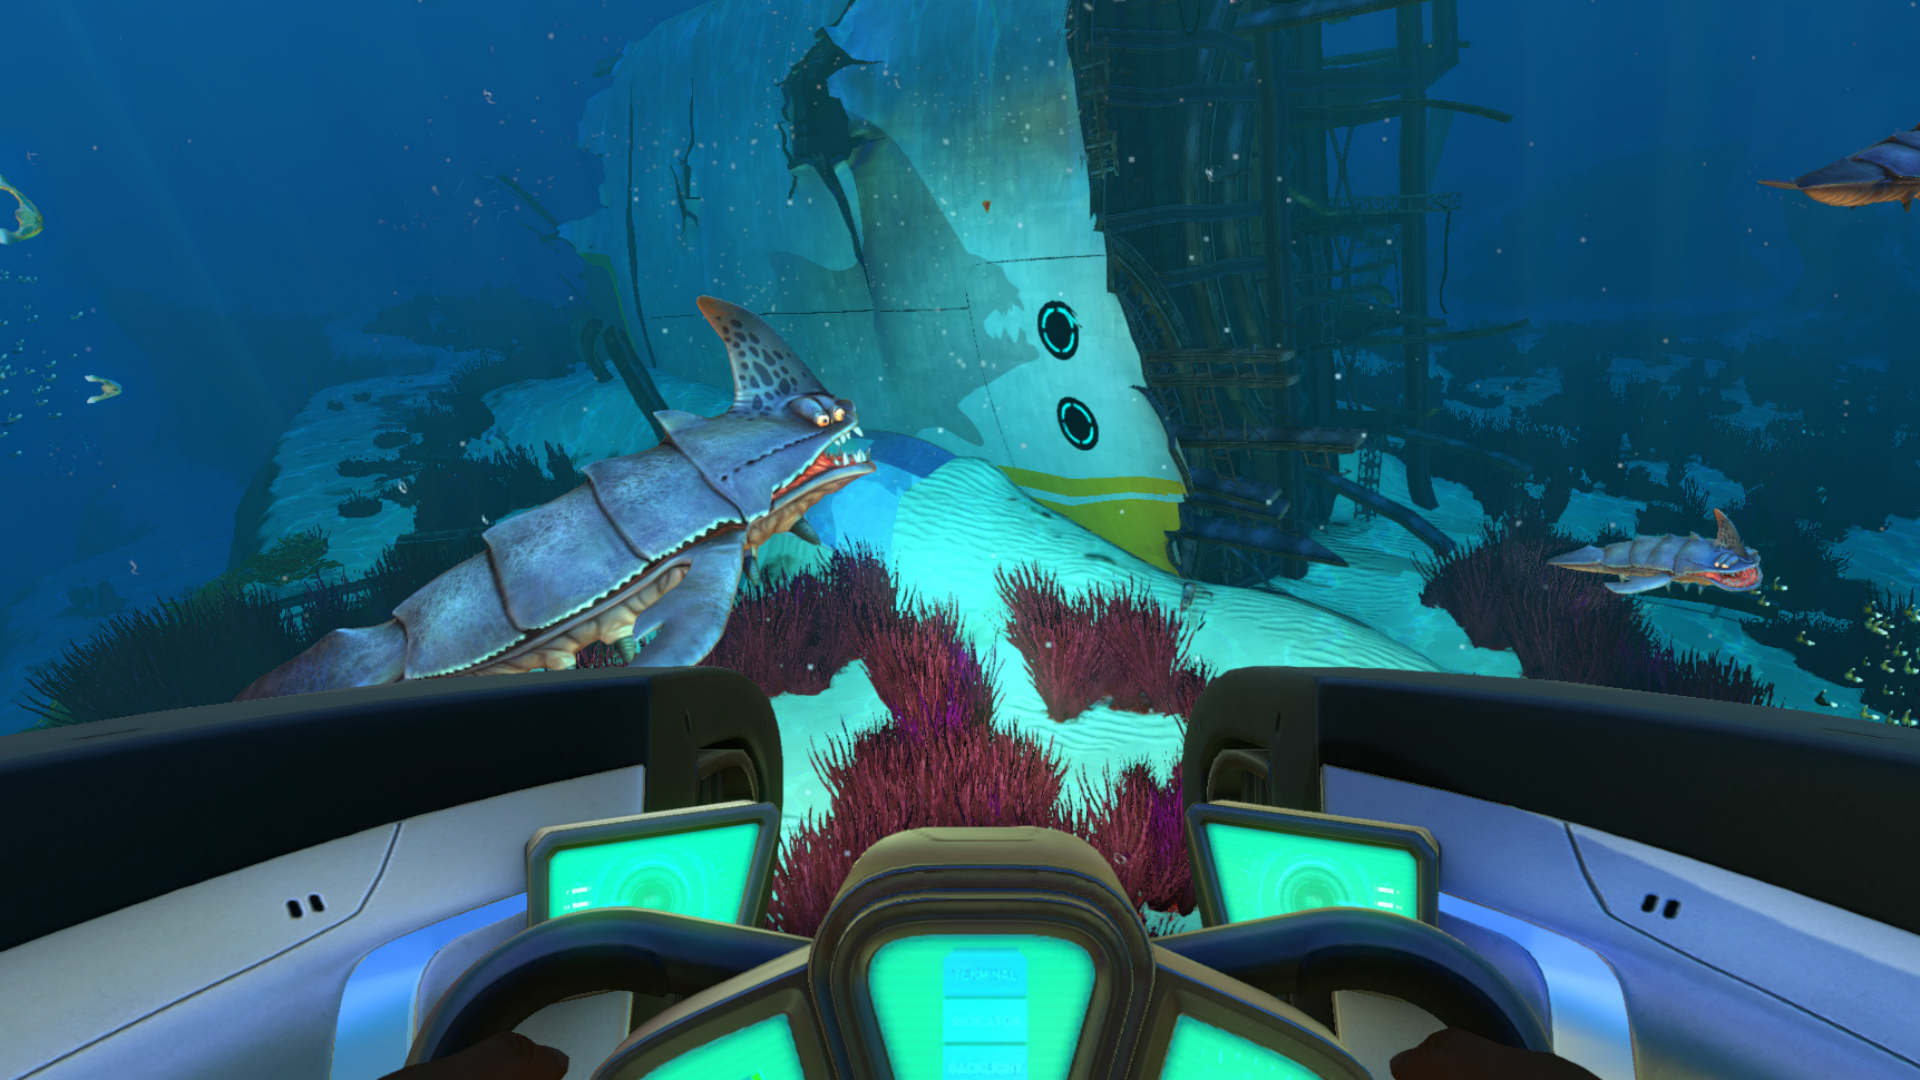 Subnautica guide: map, mods, and items to help you survive this